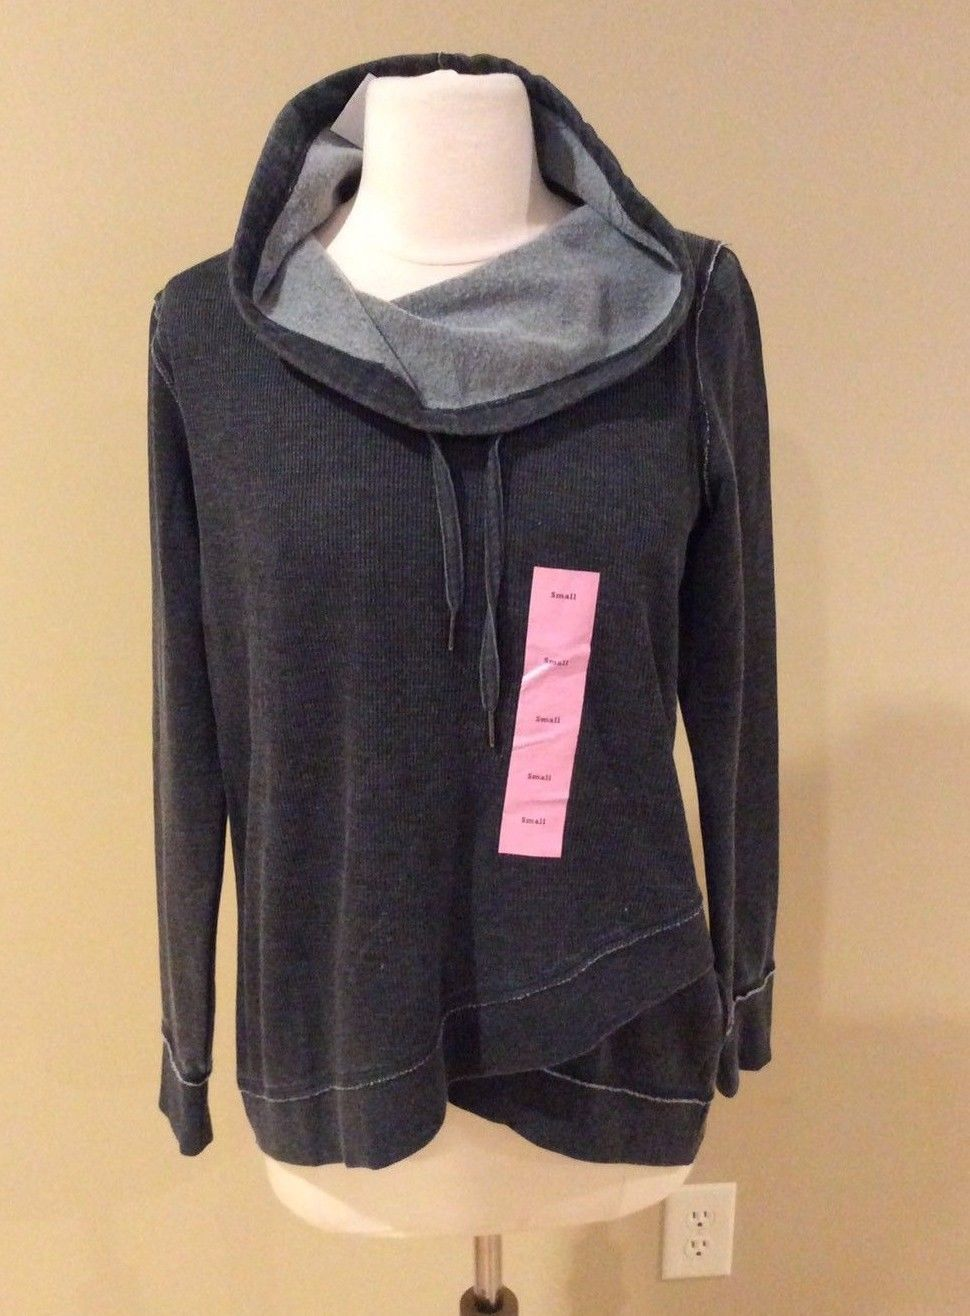 Primary image for Calvin Klein Pullover Sweatshirt Waffle Gray Shirt Womens S Top Long Sleeve